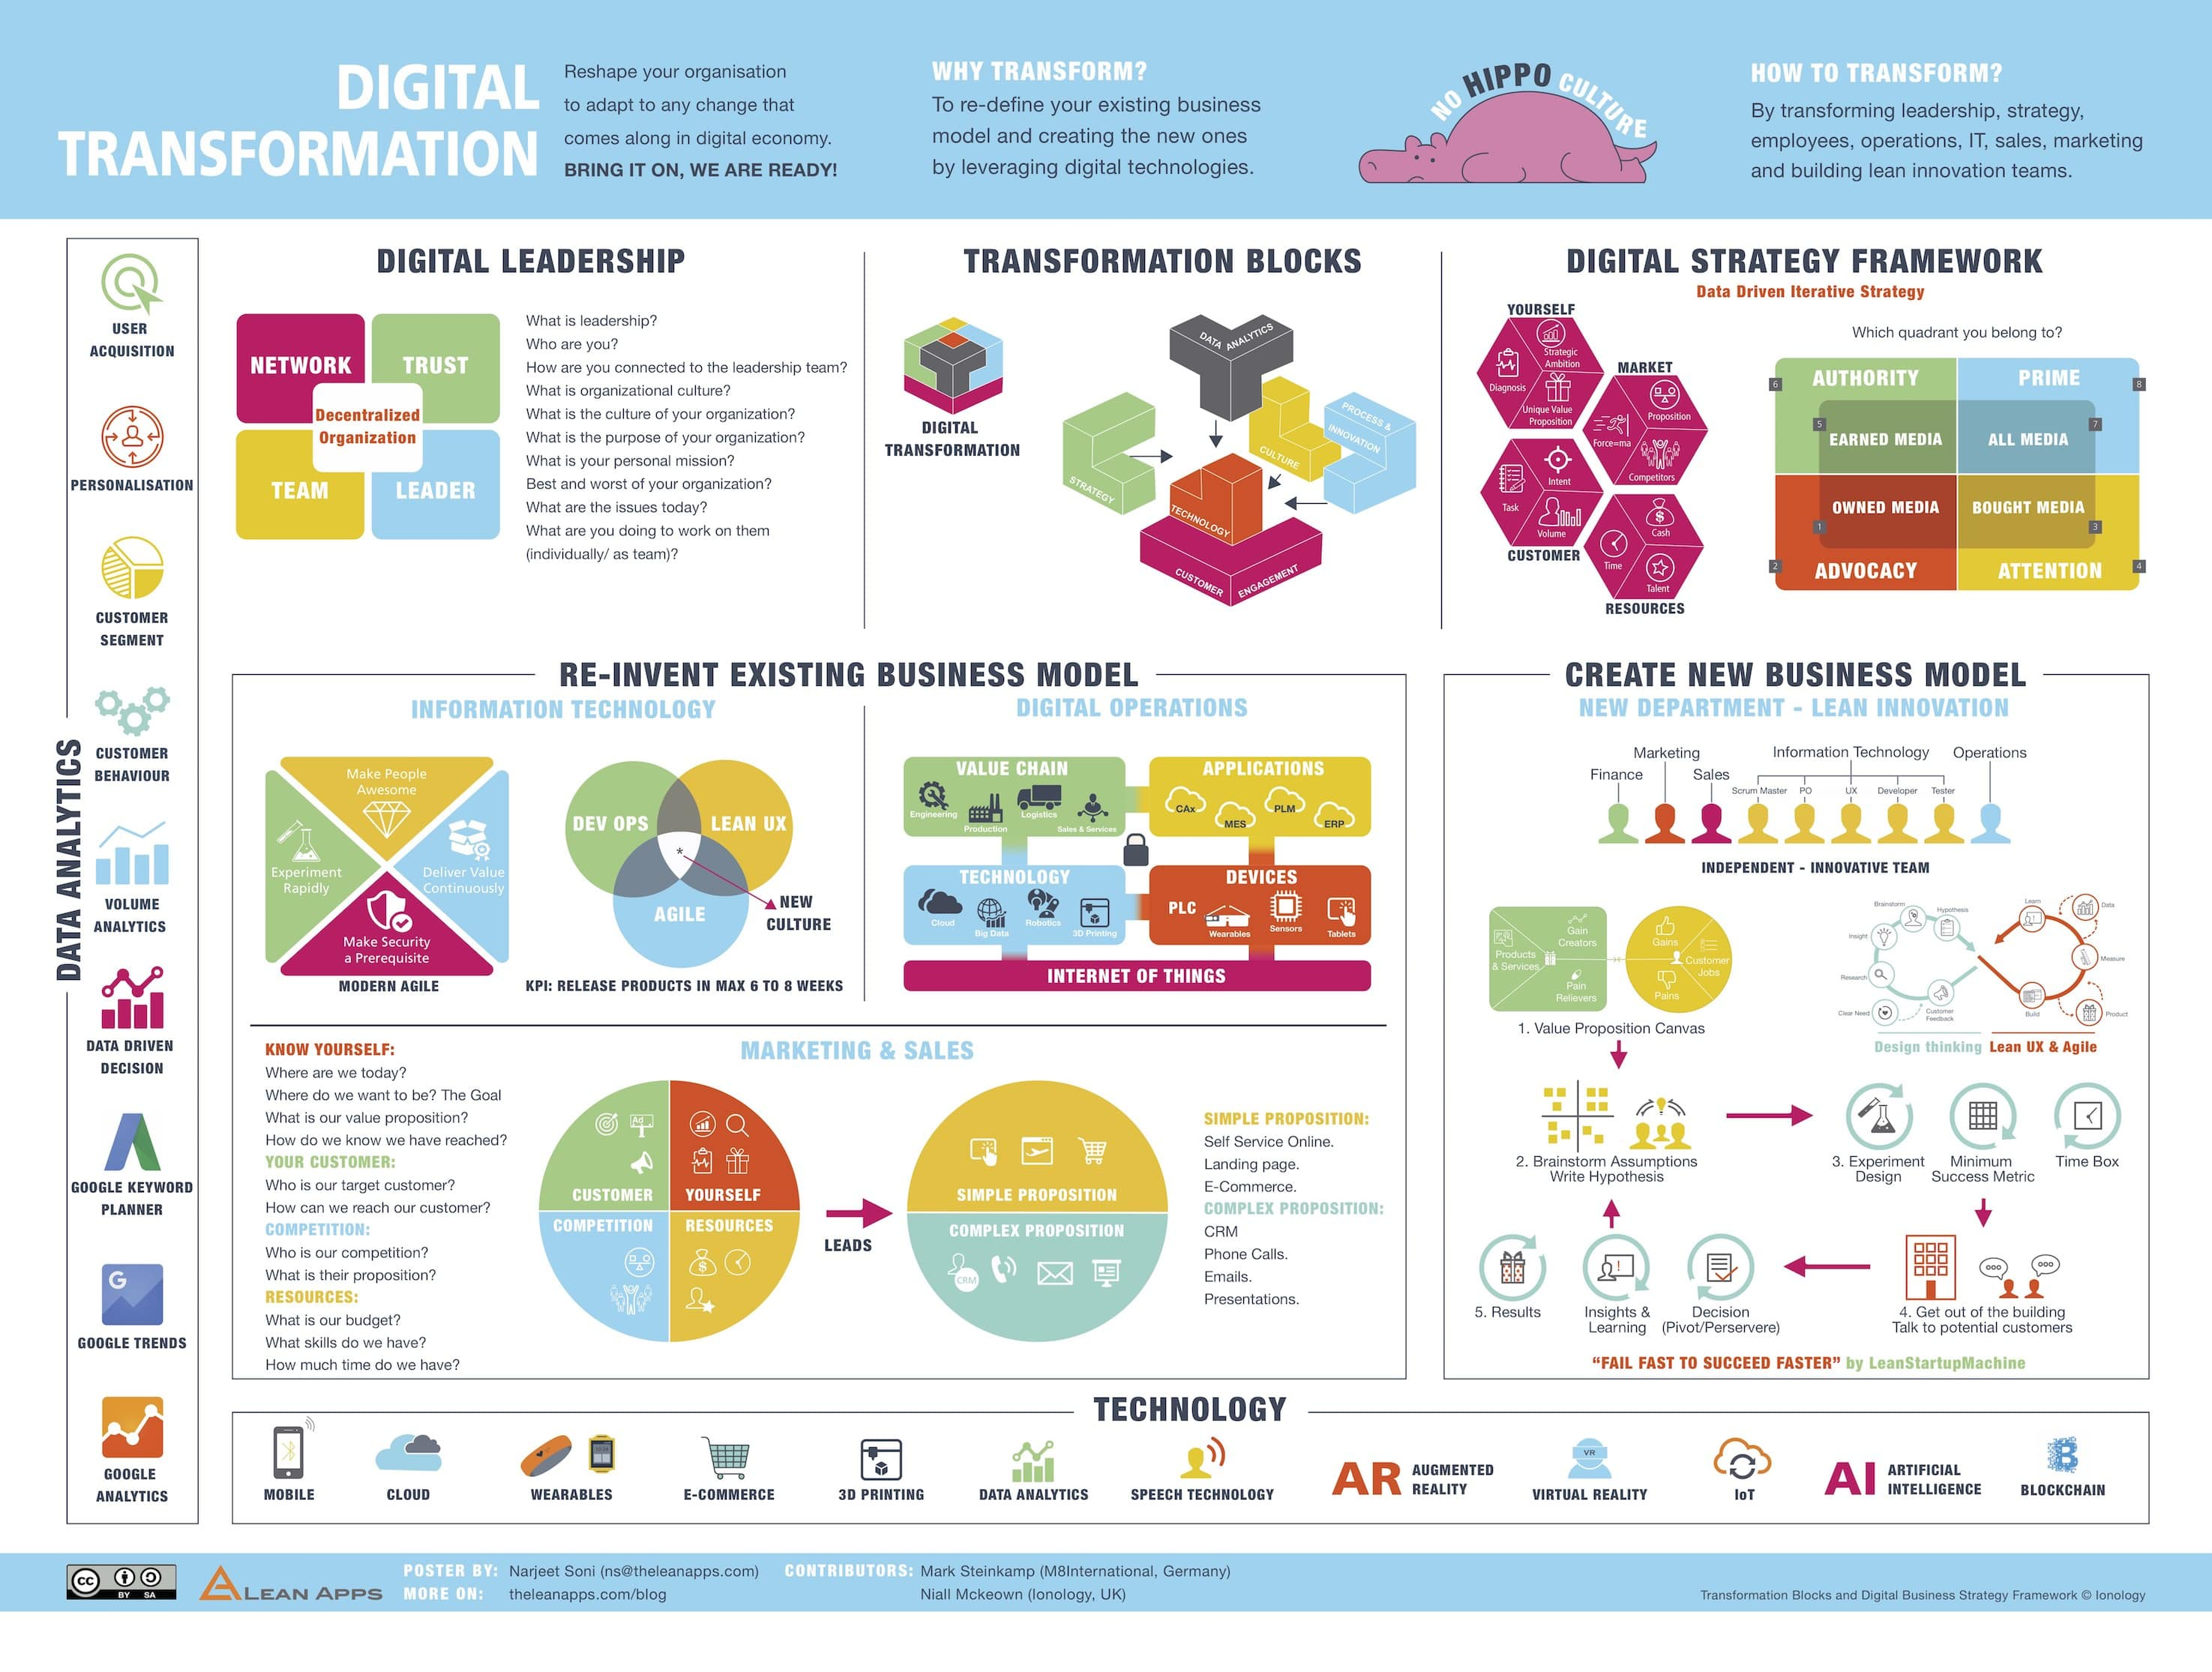 Digital Transformation Framework infographic